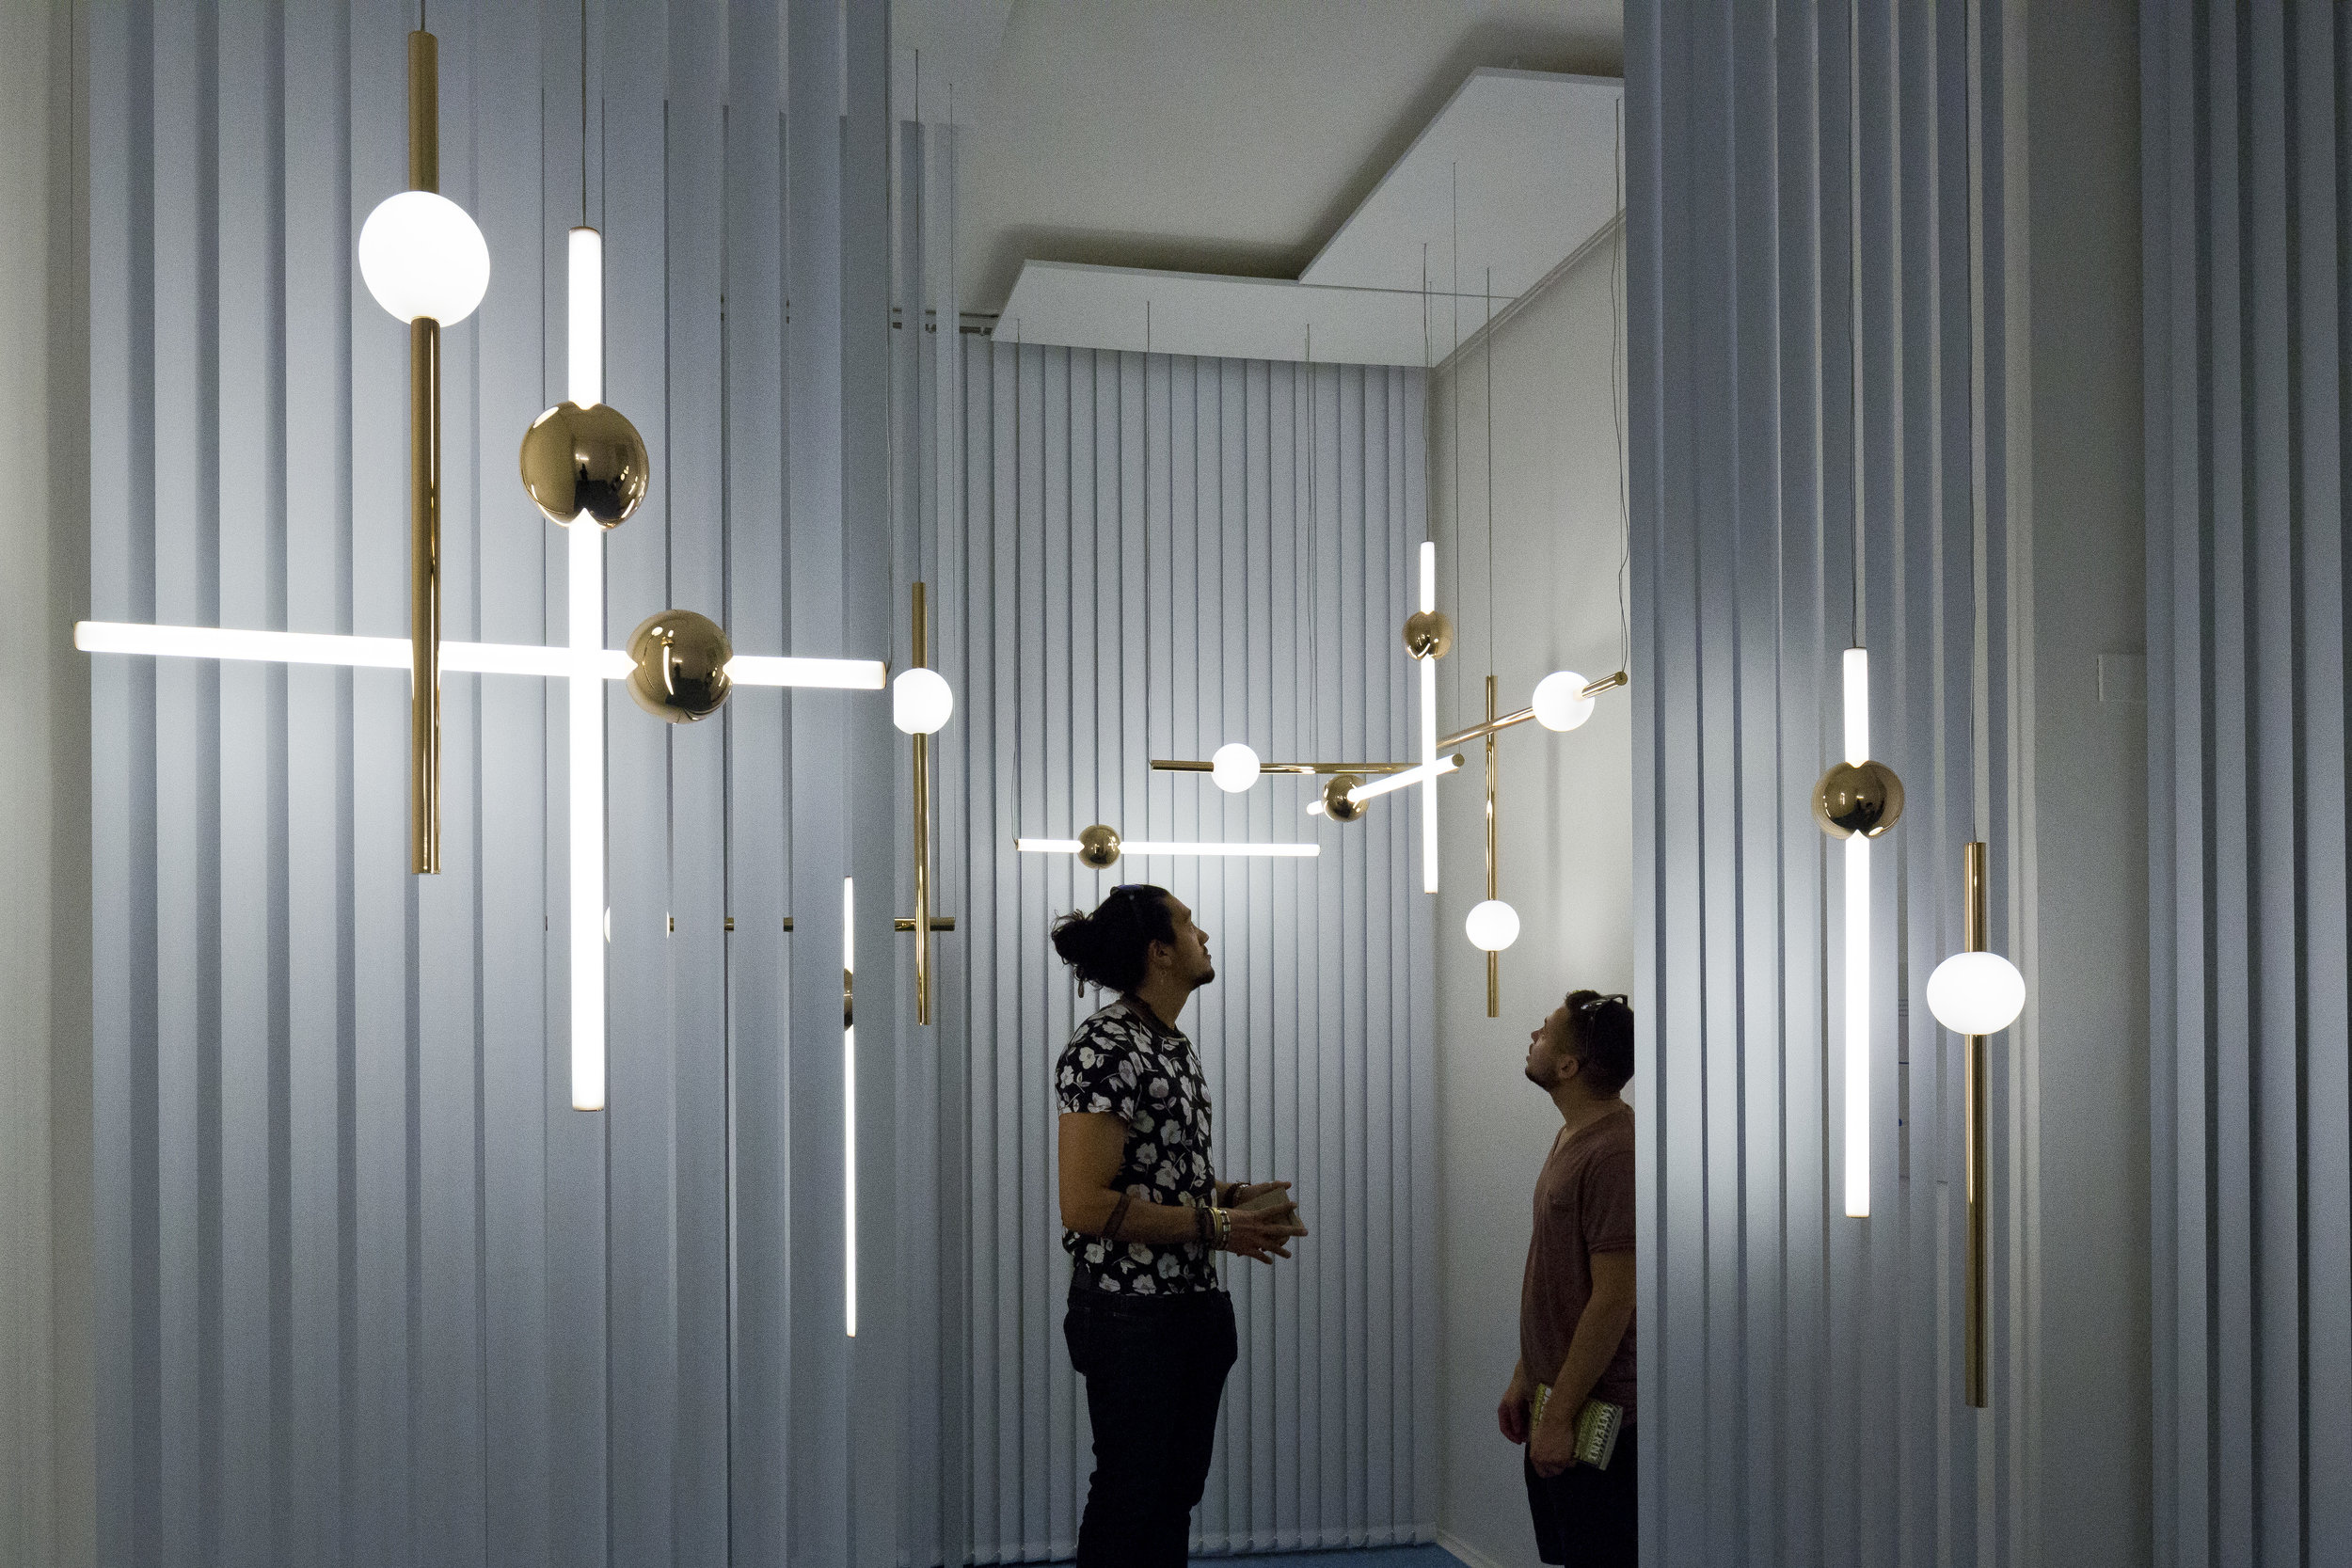 The Orion light by Lee Broom is part of the show 'Observatory' during Milan Design Week.